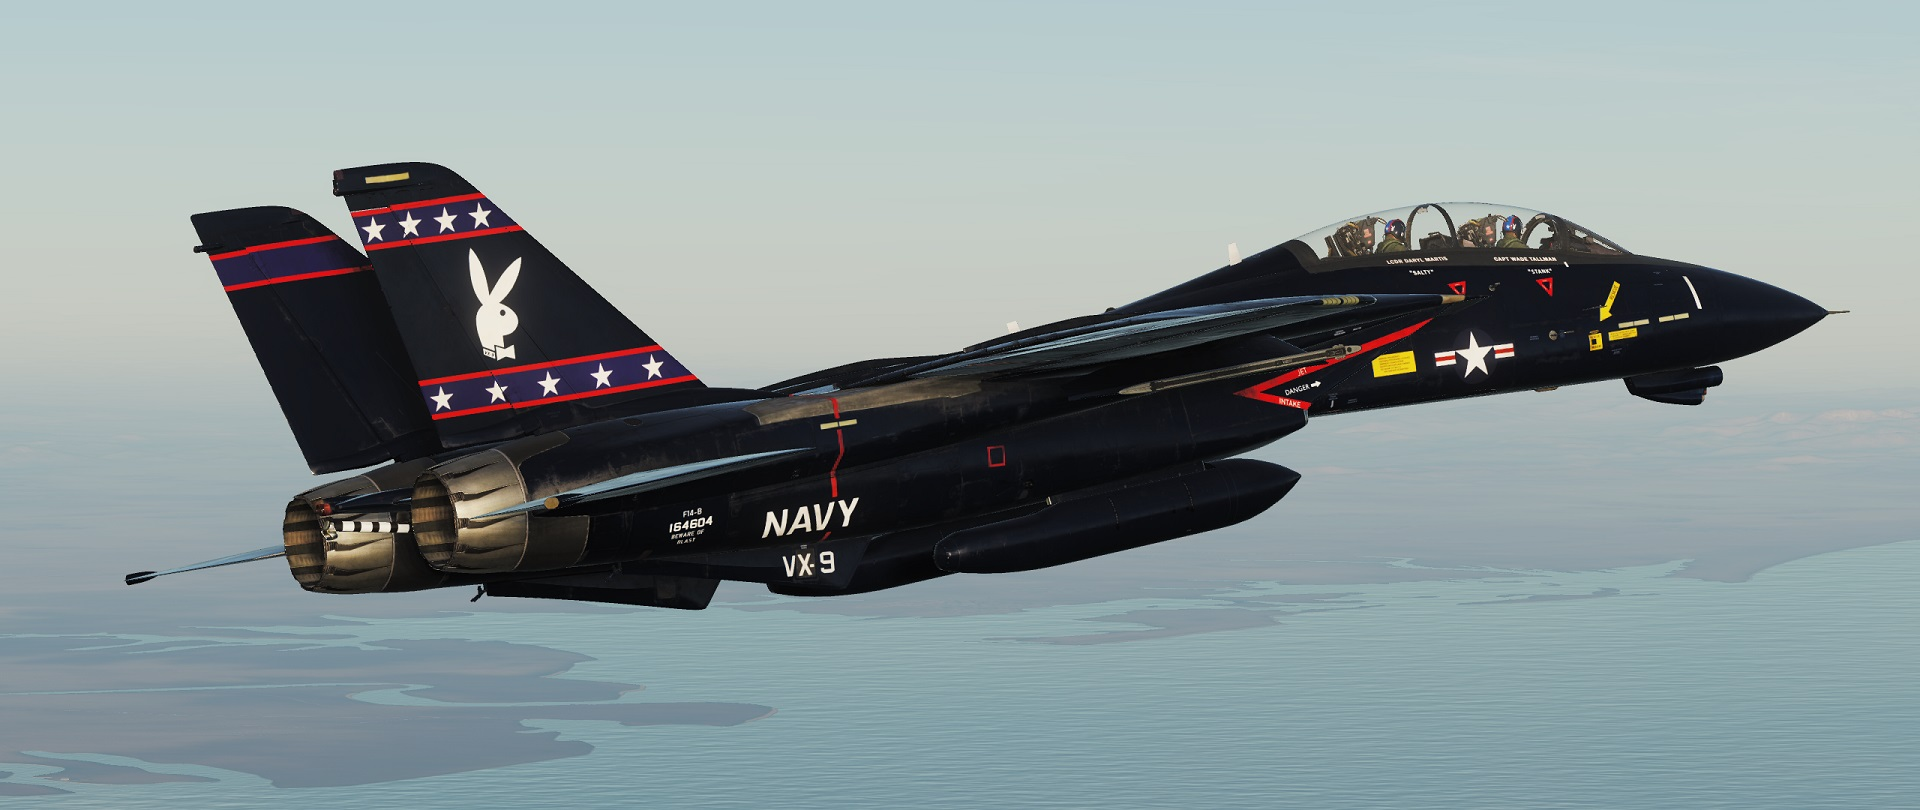 "F-14 VX-9 ""Vandy 1"" Black Bunny v1.1"